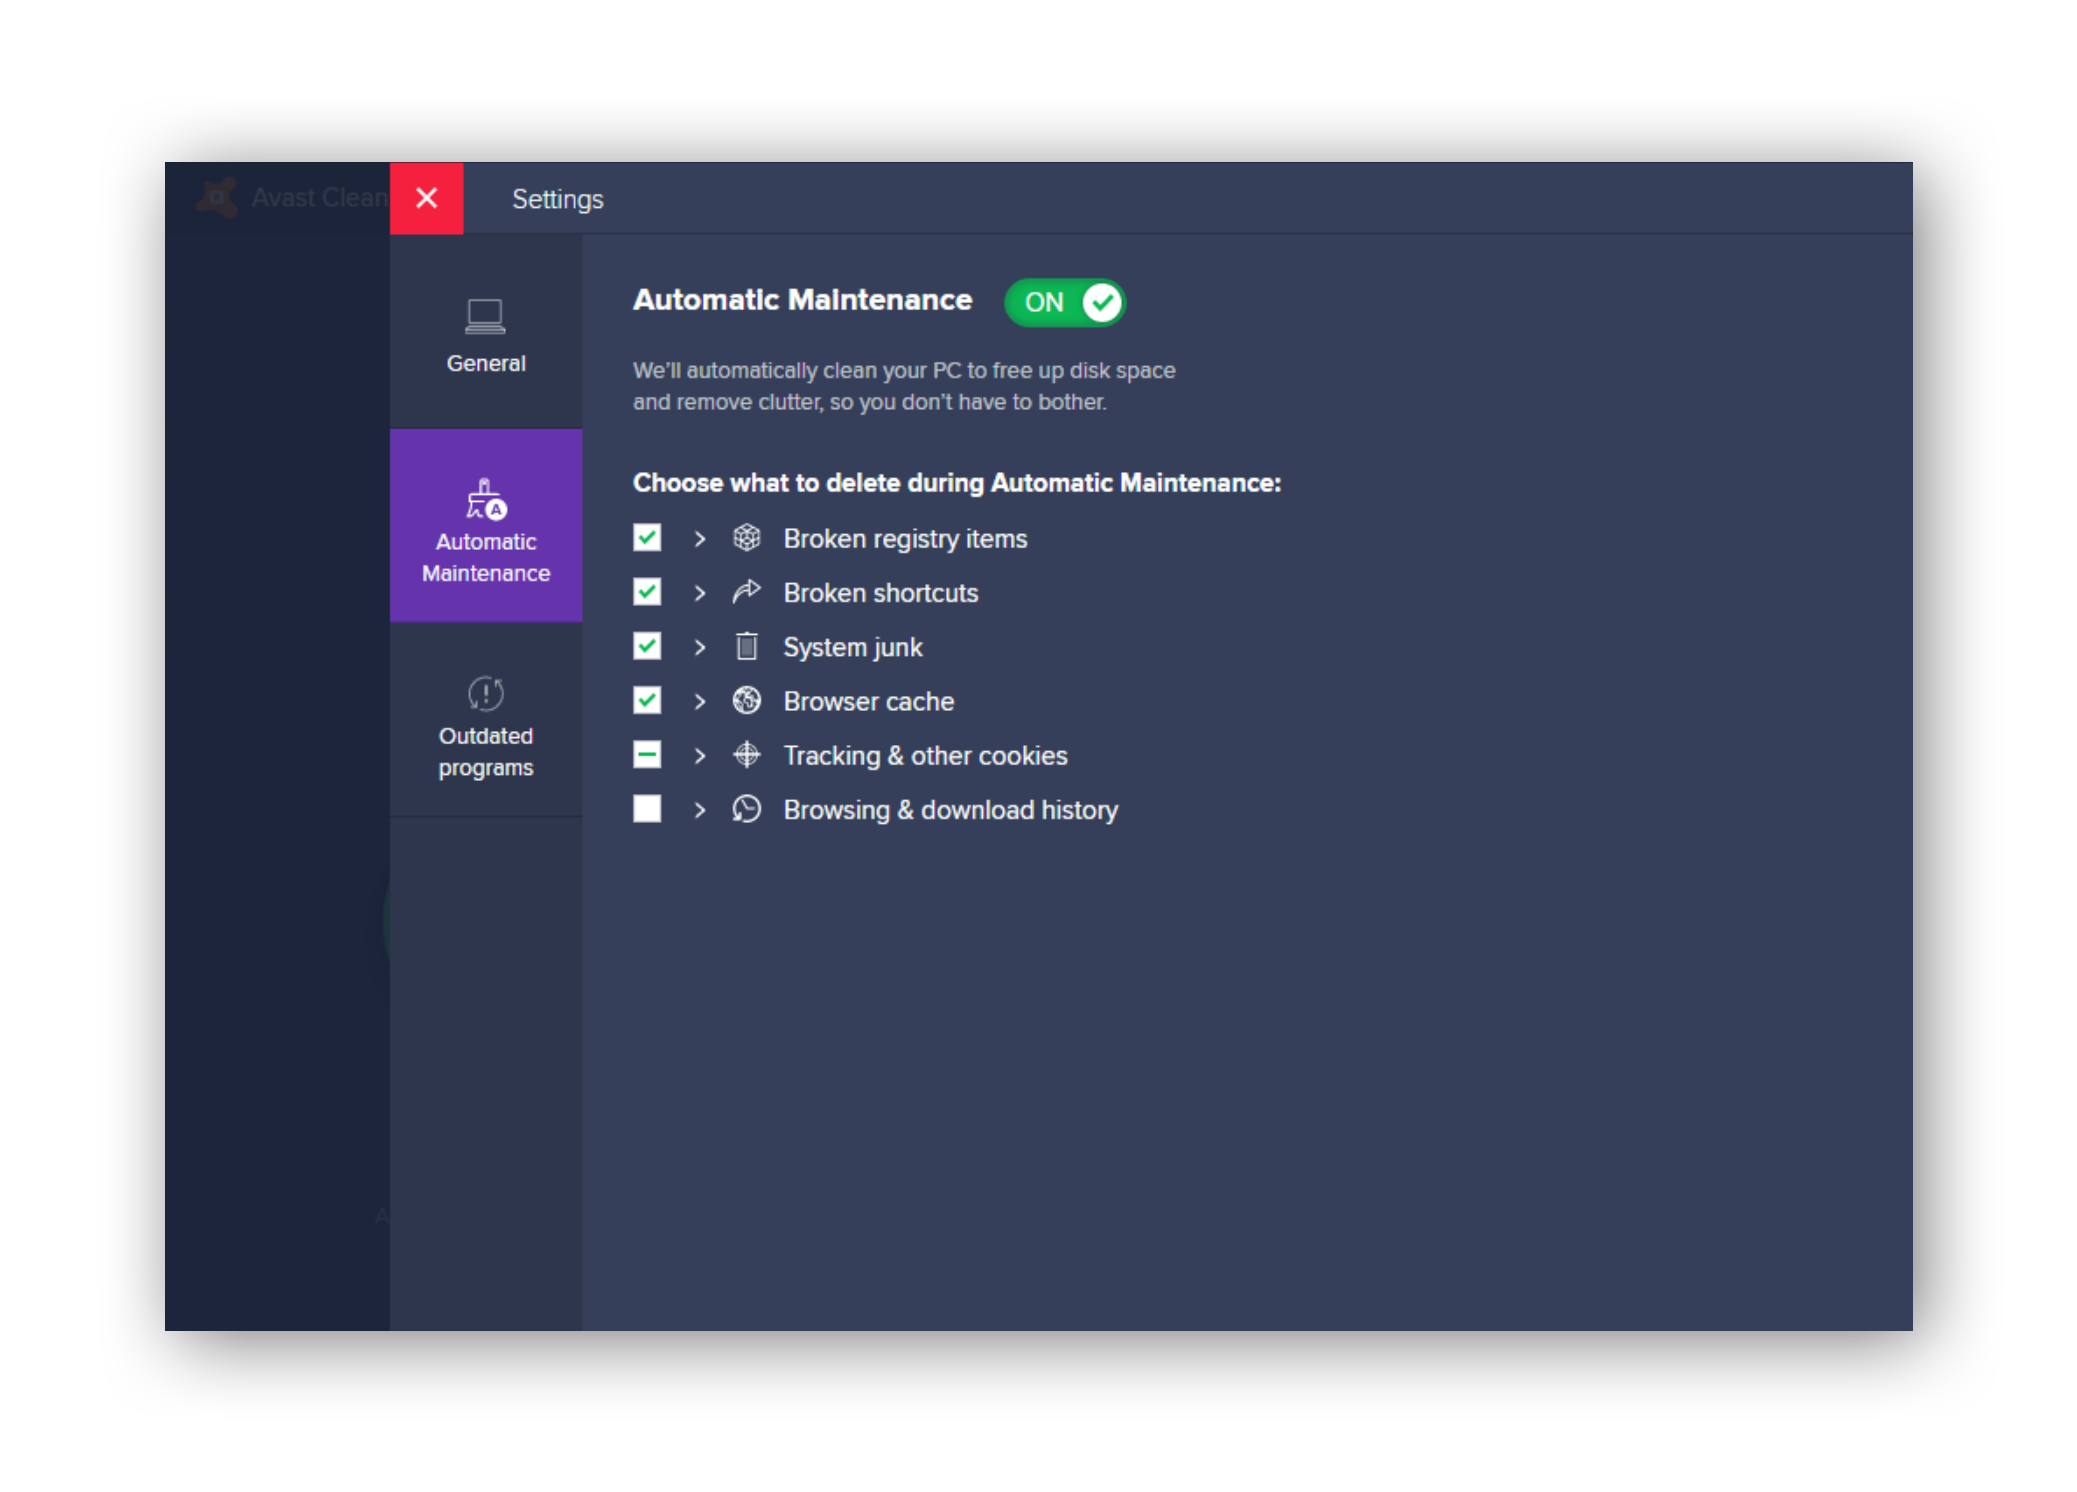 Using Automatic Maintenance in Avast Cleanup.